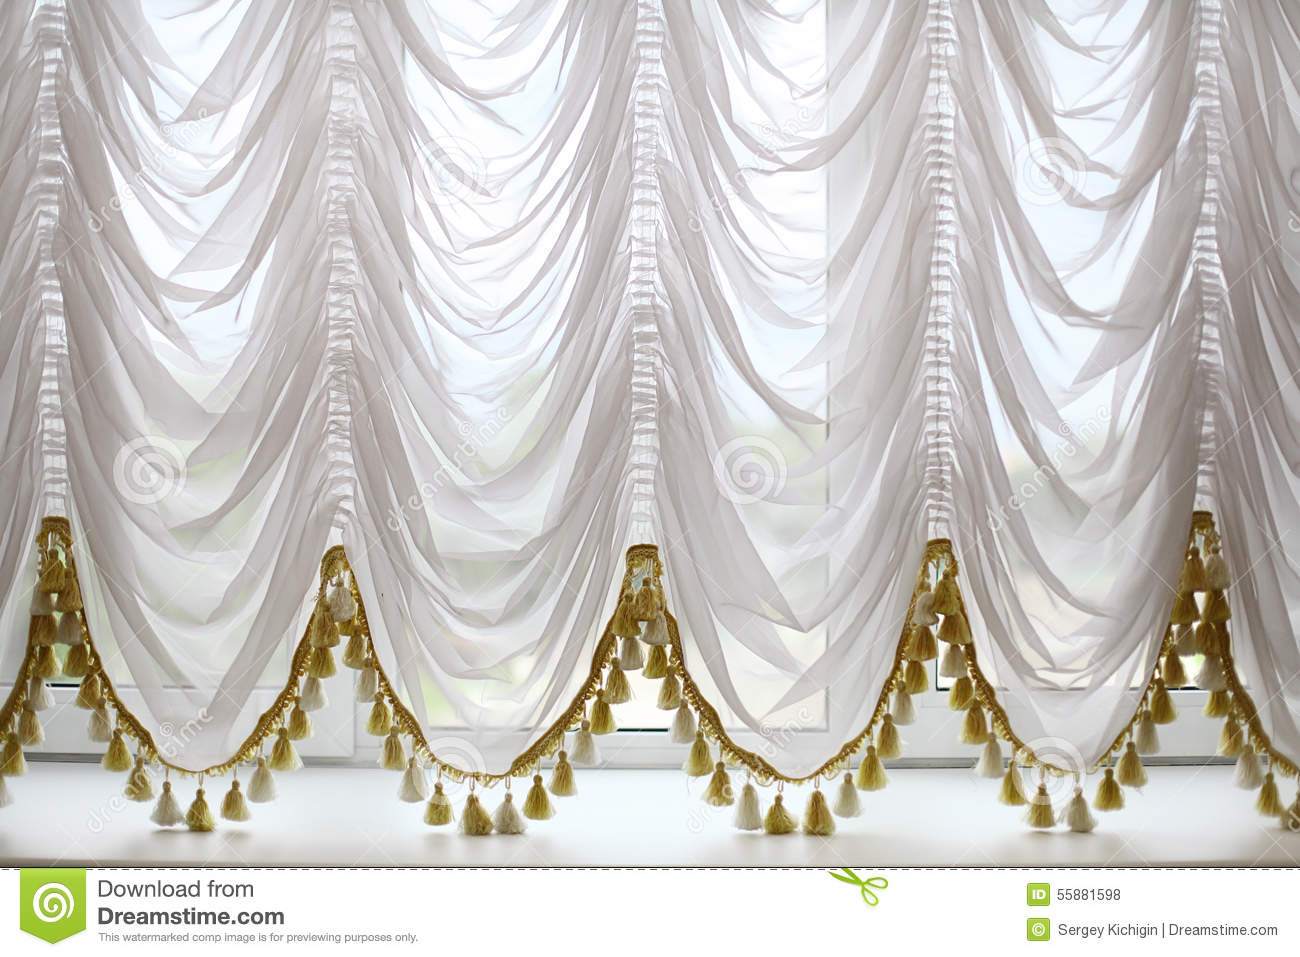 Royalty free or white curtain background drapes royalty free stock - Royalty Free Stock Photo Background Beautiful Curtains White